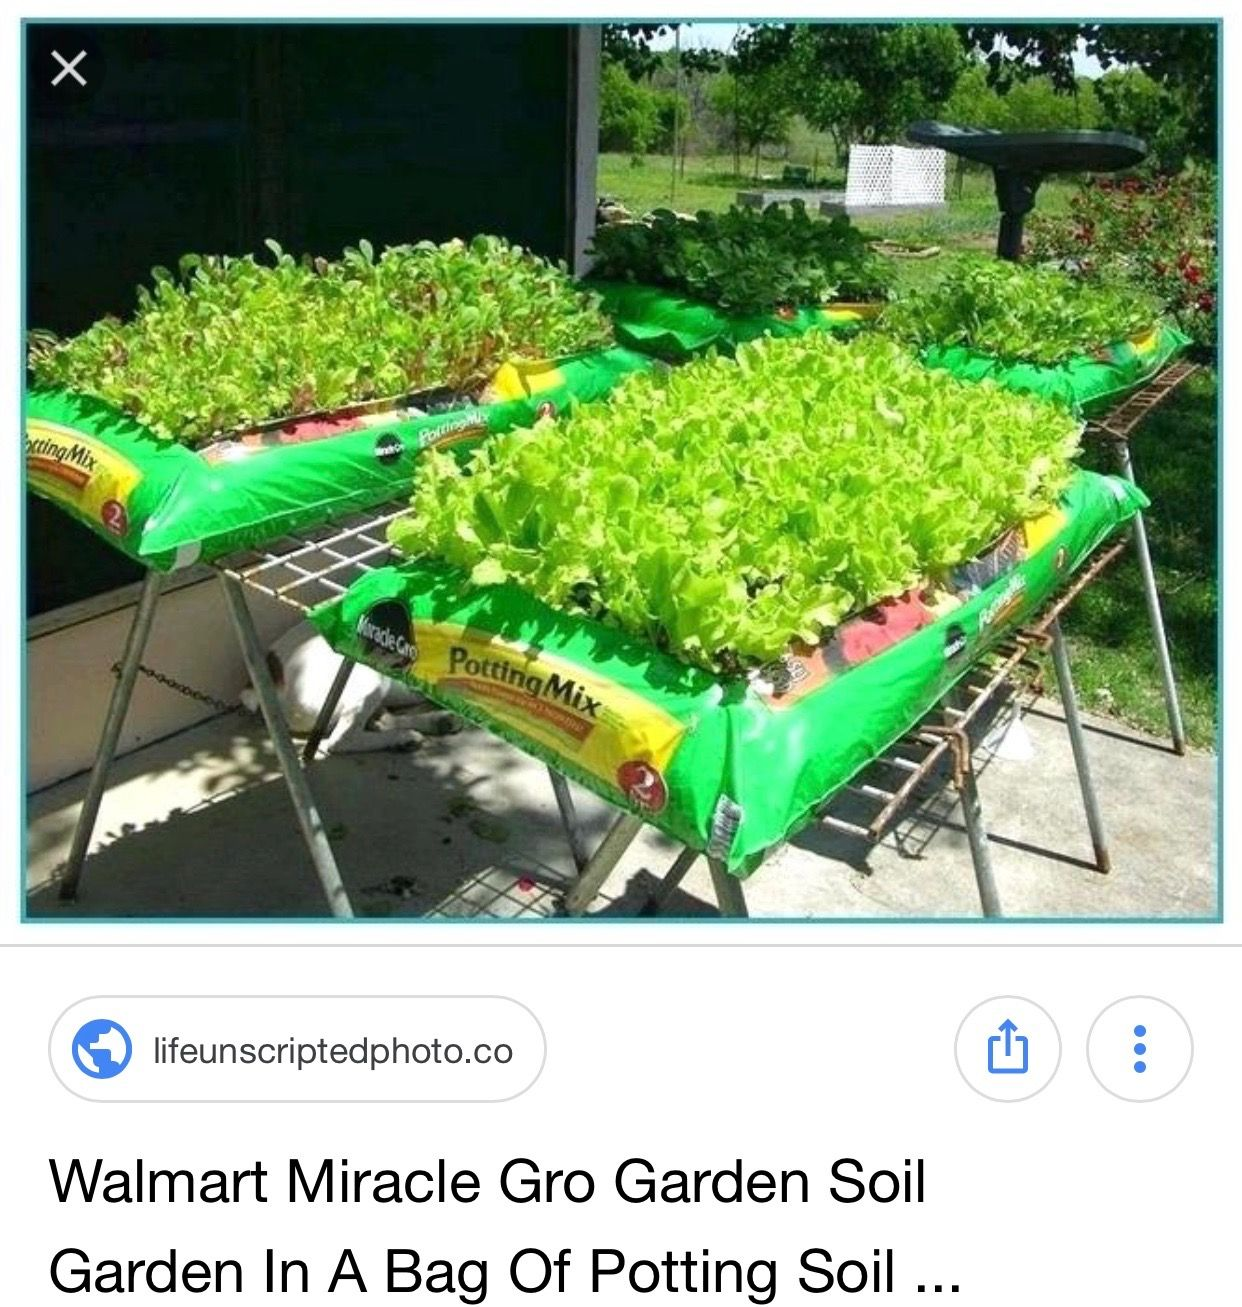 Raised Garden Bed On Saw Horses With Bag Of Potting Soil With